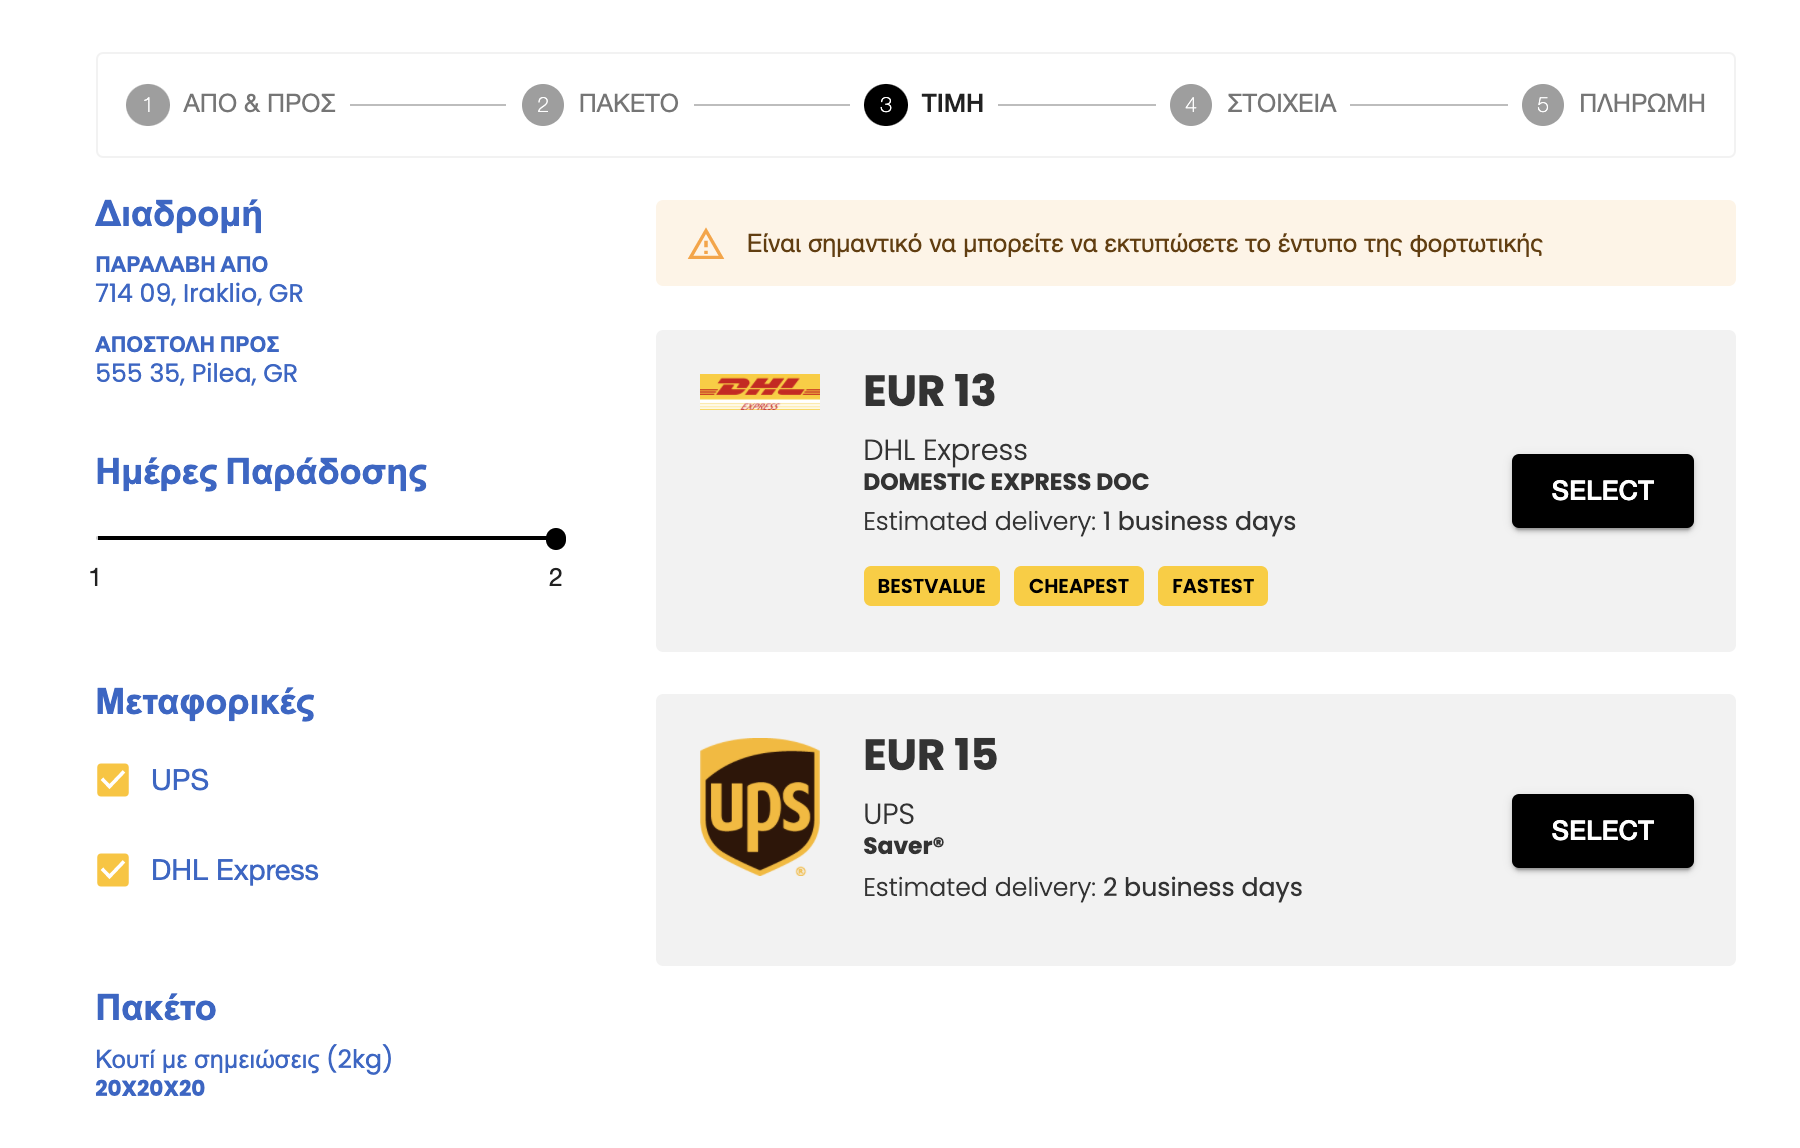 select the location of the cender and the receiver of your package to send it with weship.gr